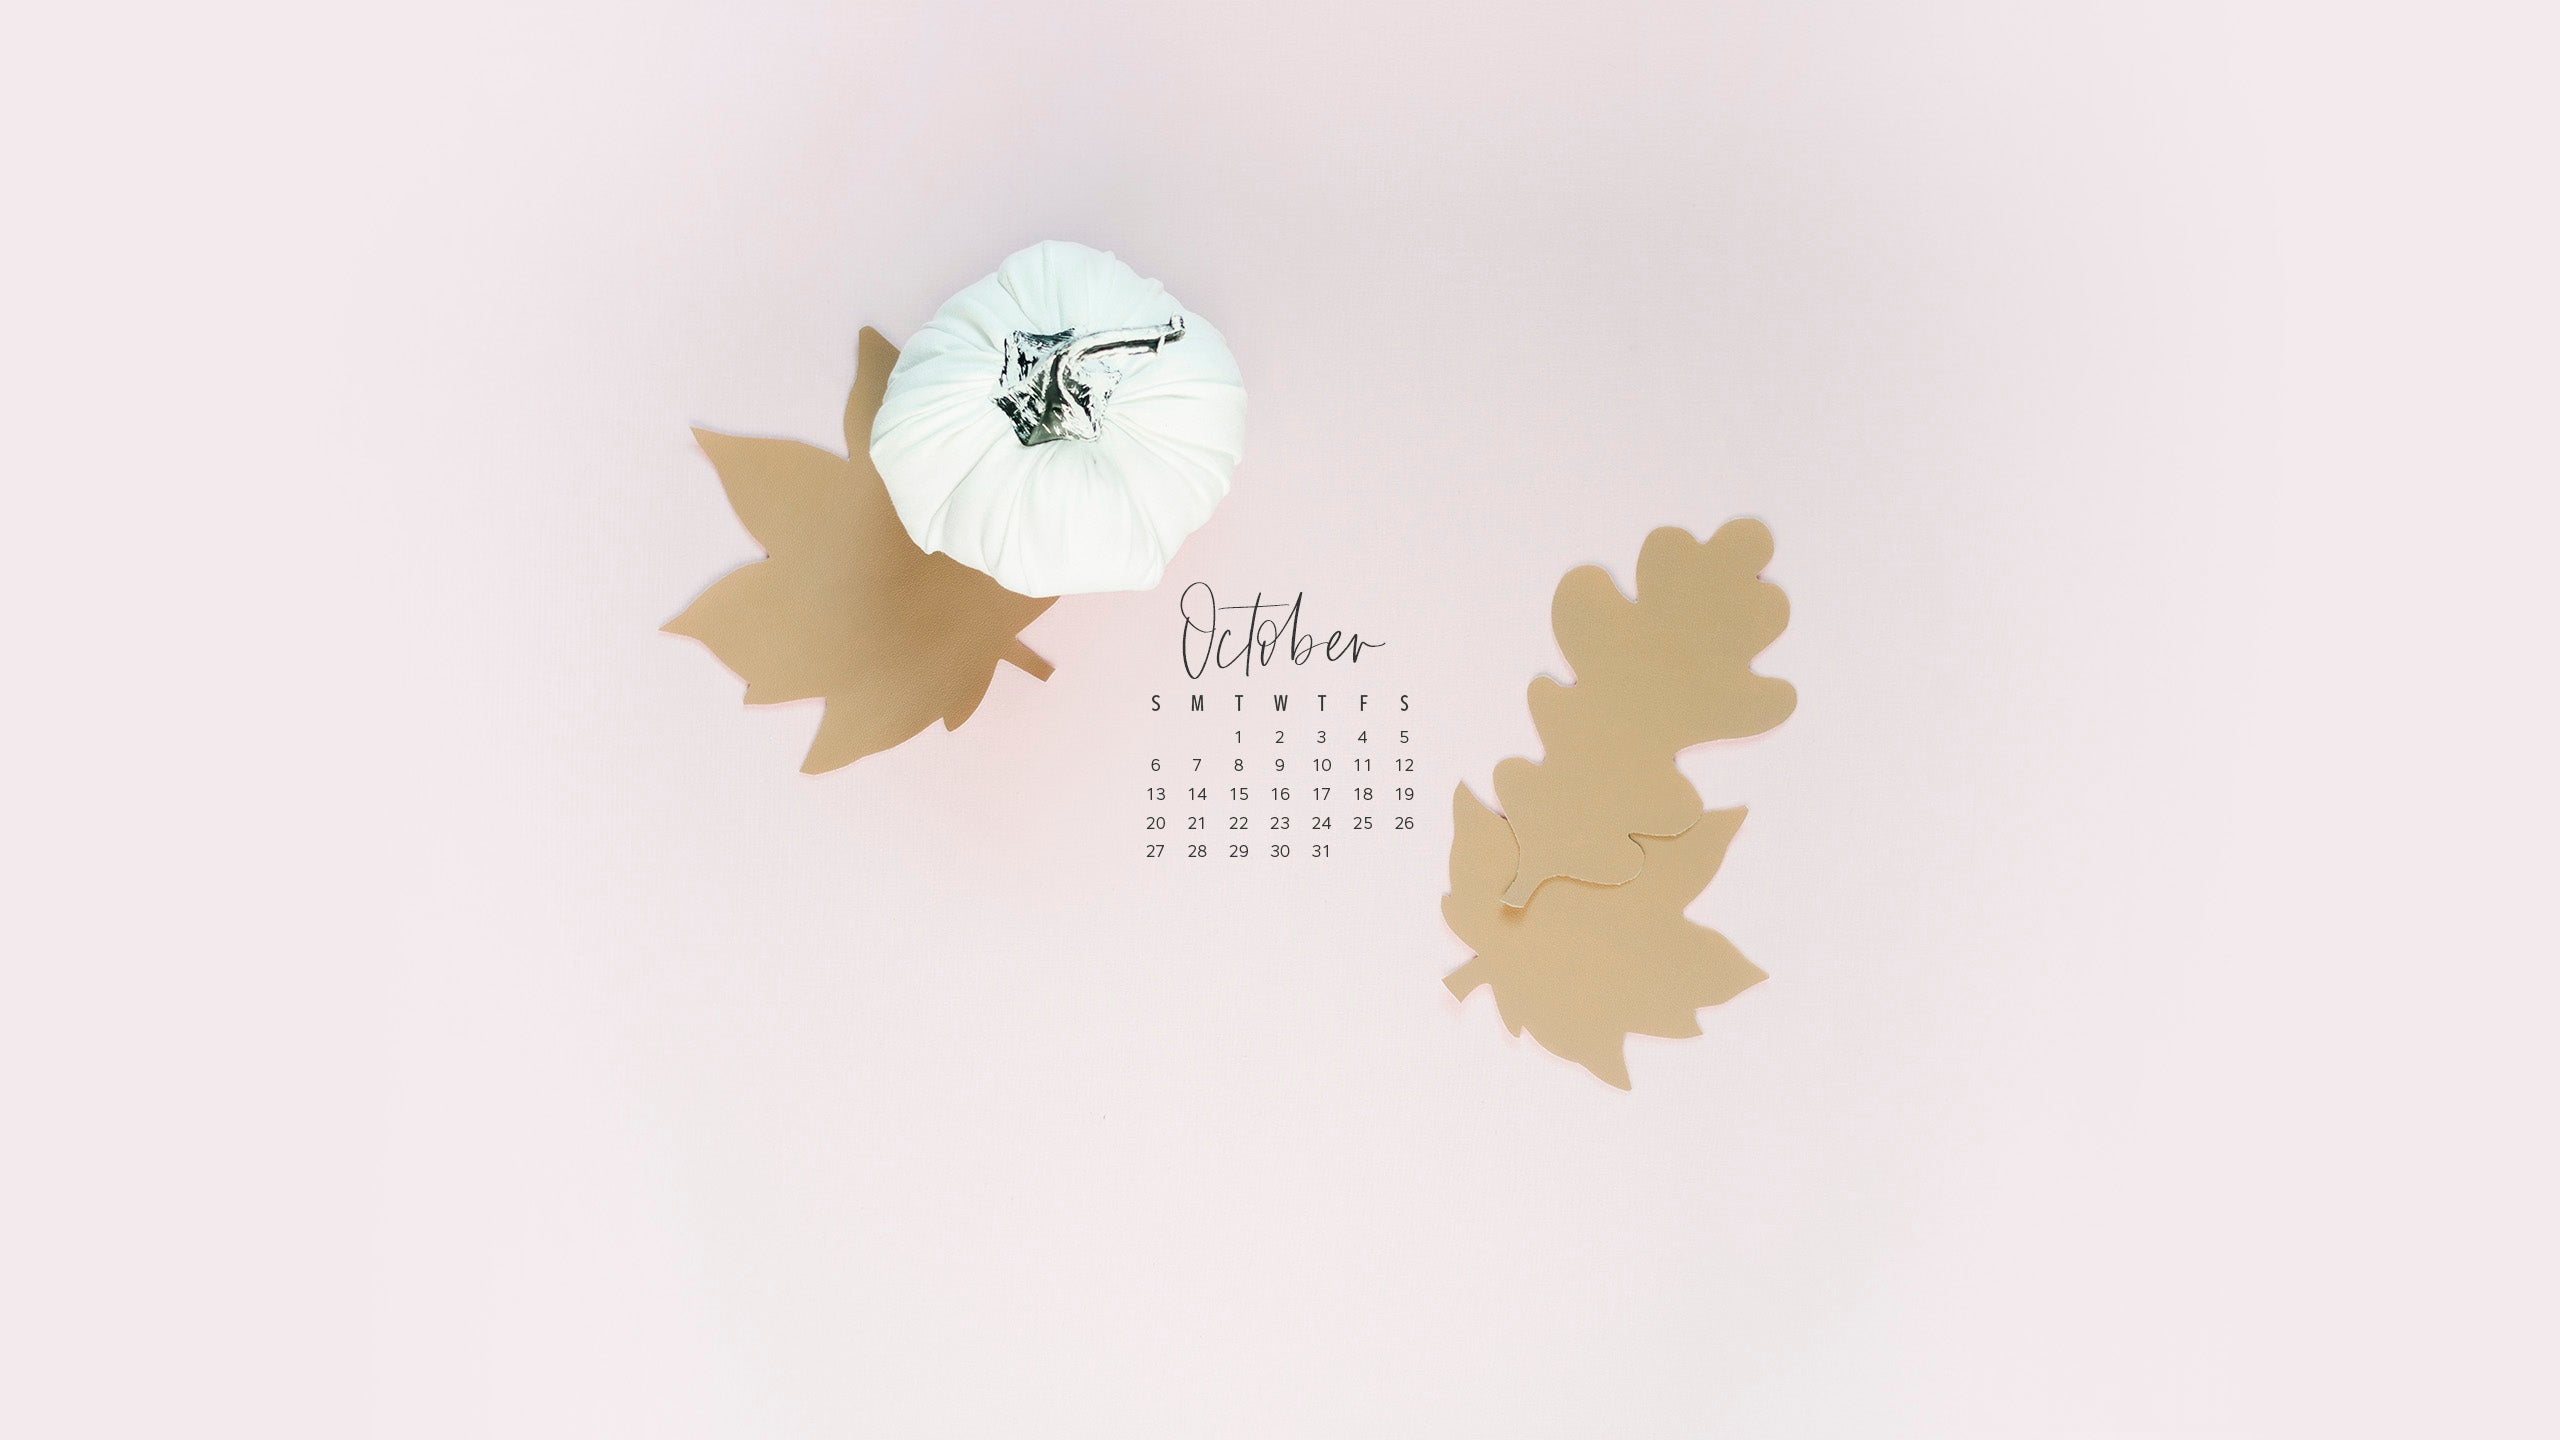 Workspacery October 2019 Calendar